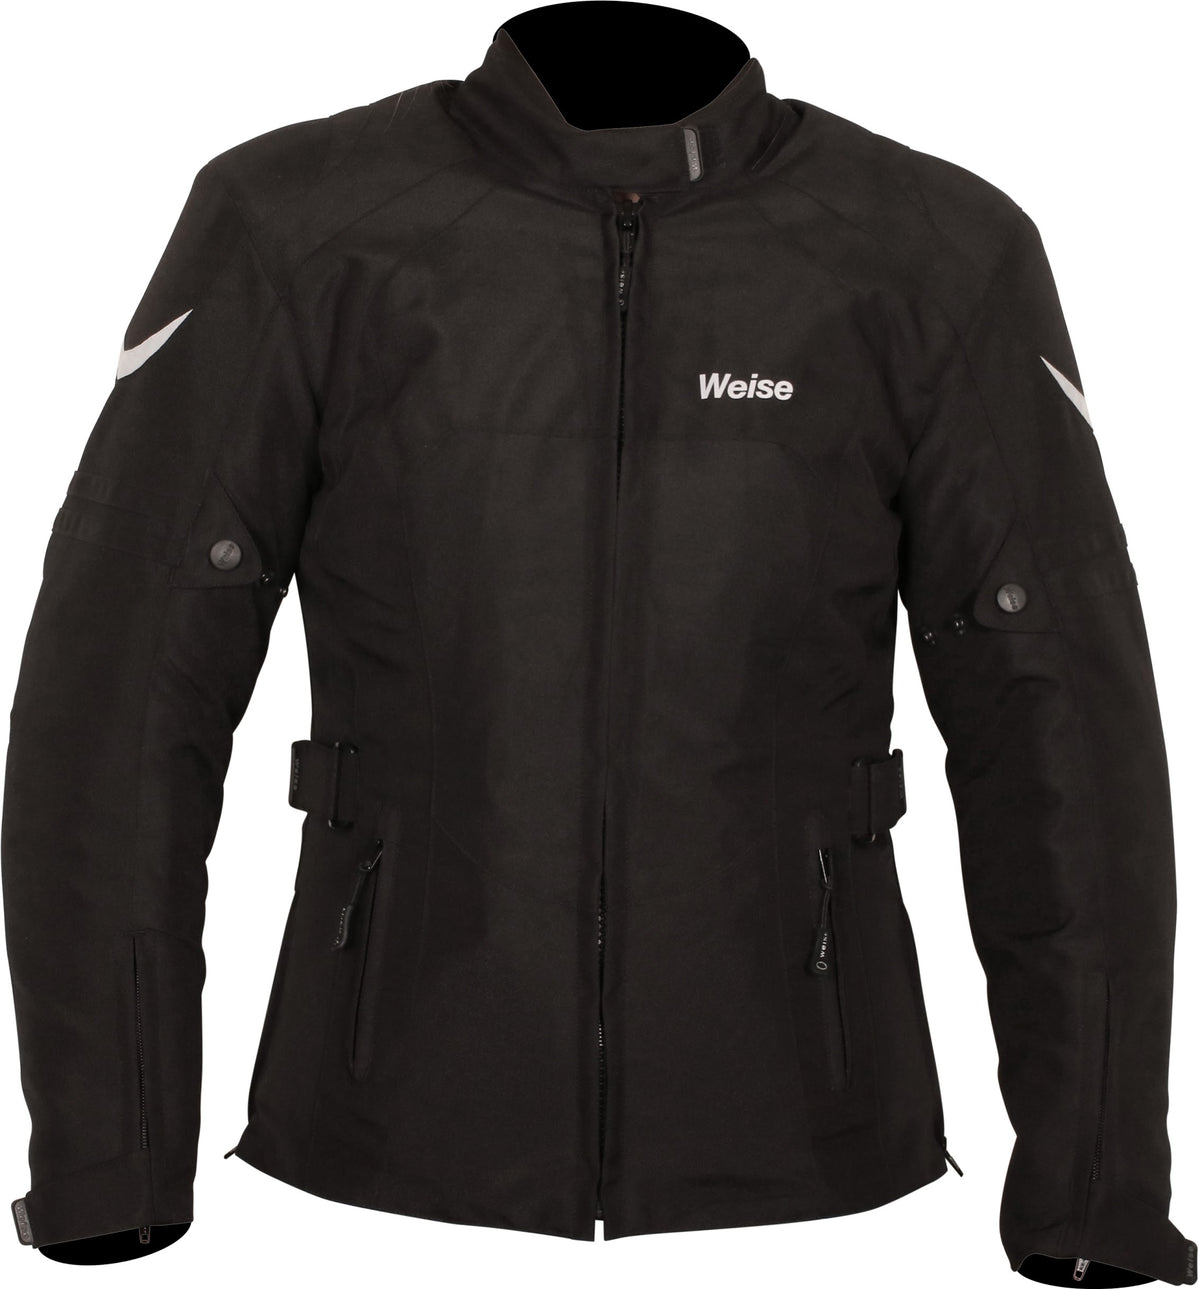 Weise Ladies Jacket - Dakota, Ladies Jacket, Weise - Averys Motorcycles